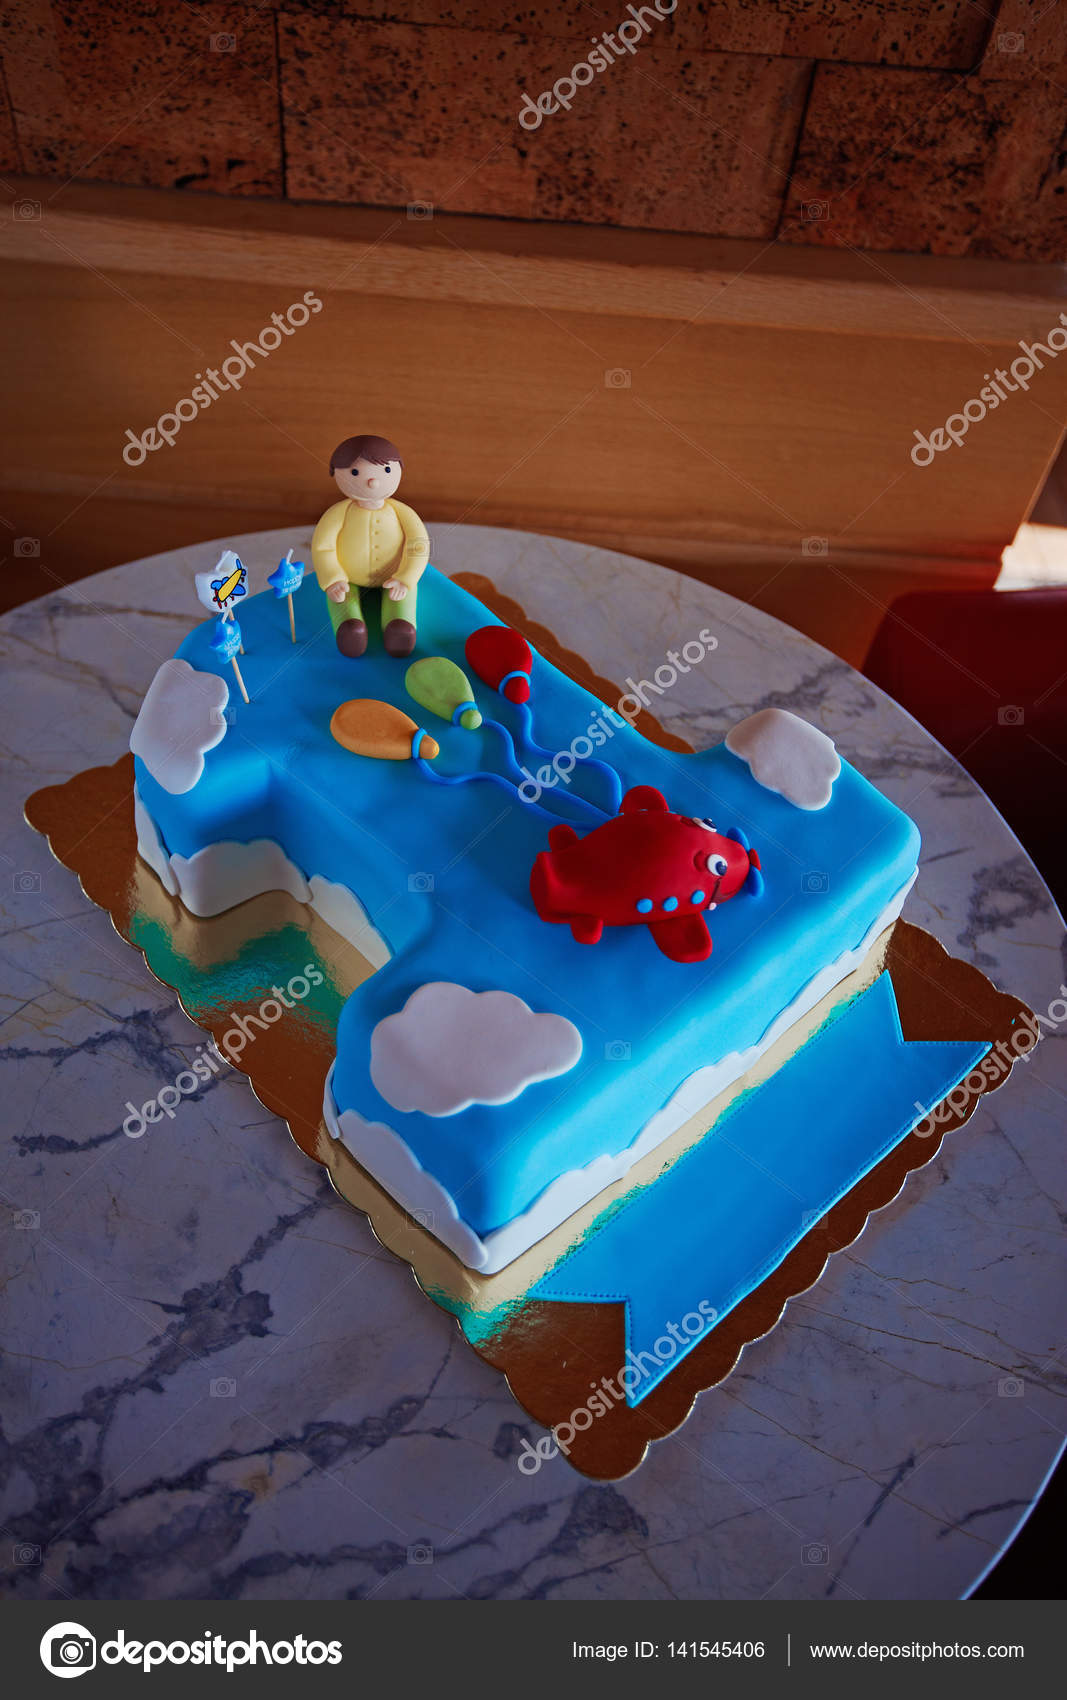 Swell Birthday Cake Designs For 1 Year Old Boy Birthday Cake For 1 Personalised Birthday Cards Veneteletsinfo